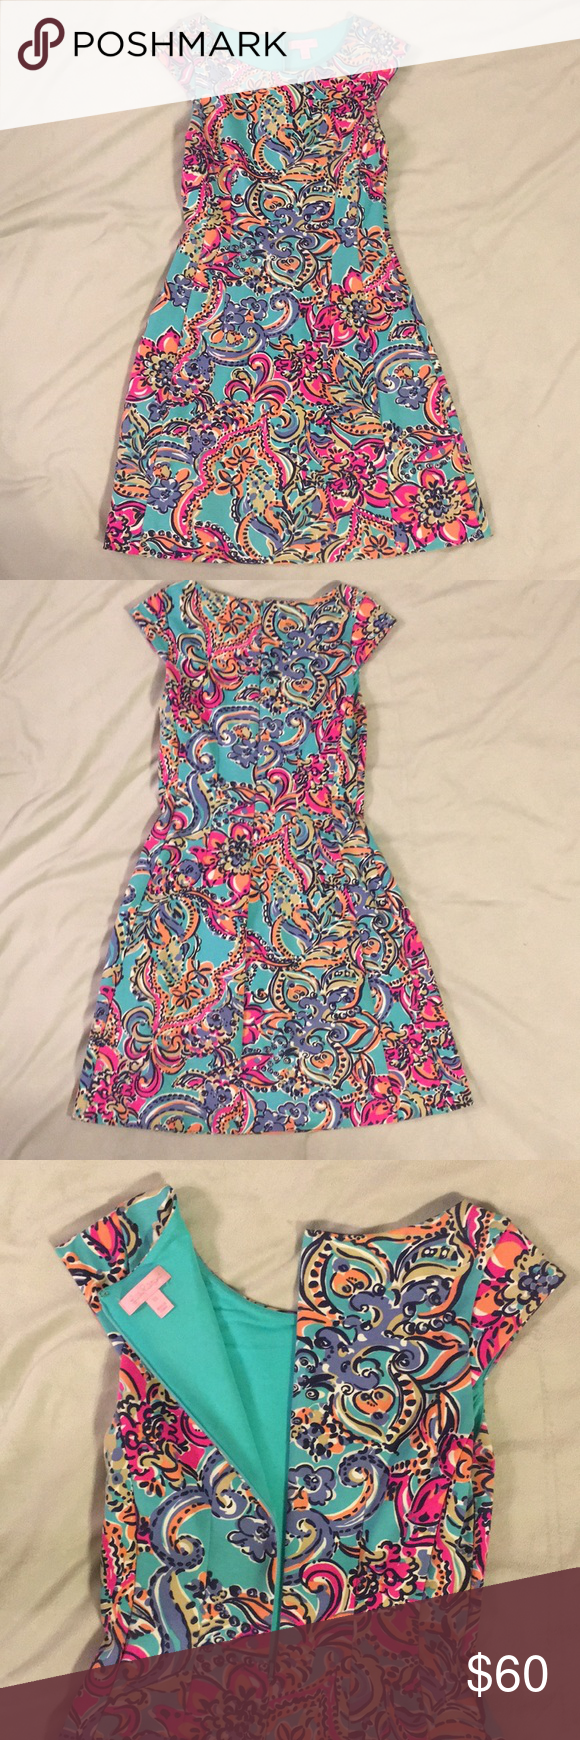 f374518552f73b Lilly Pulitzer Briella dress (EUC) EUC. Lilly Pulitzer Briella dress in  print Aqua